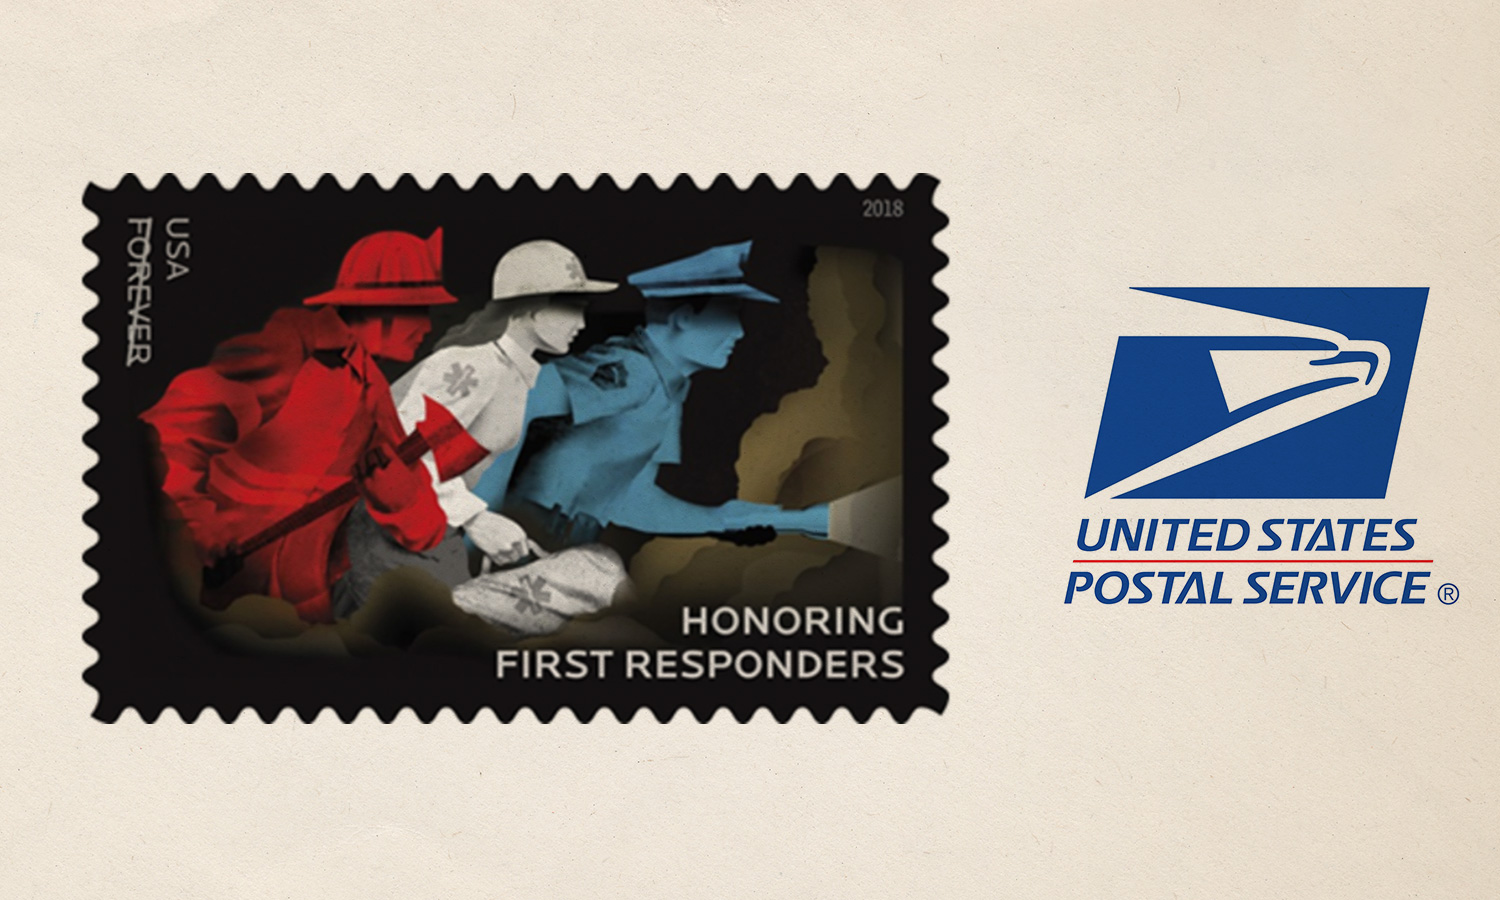 USPS First Responders